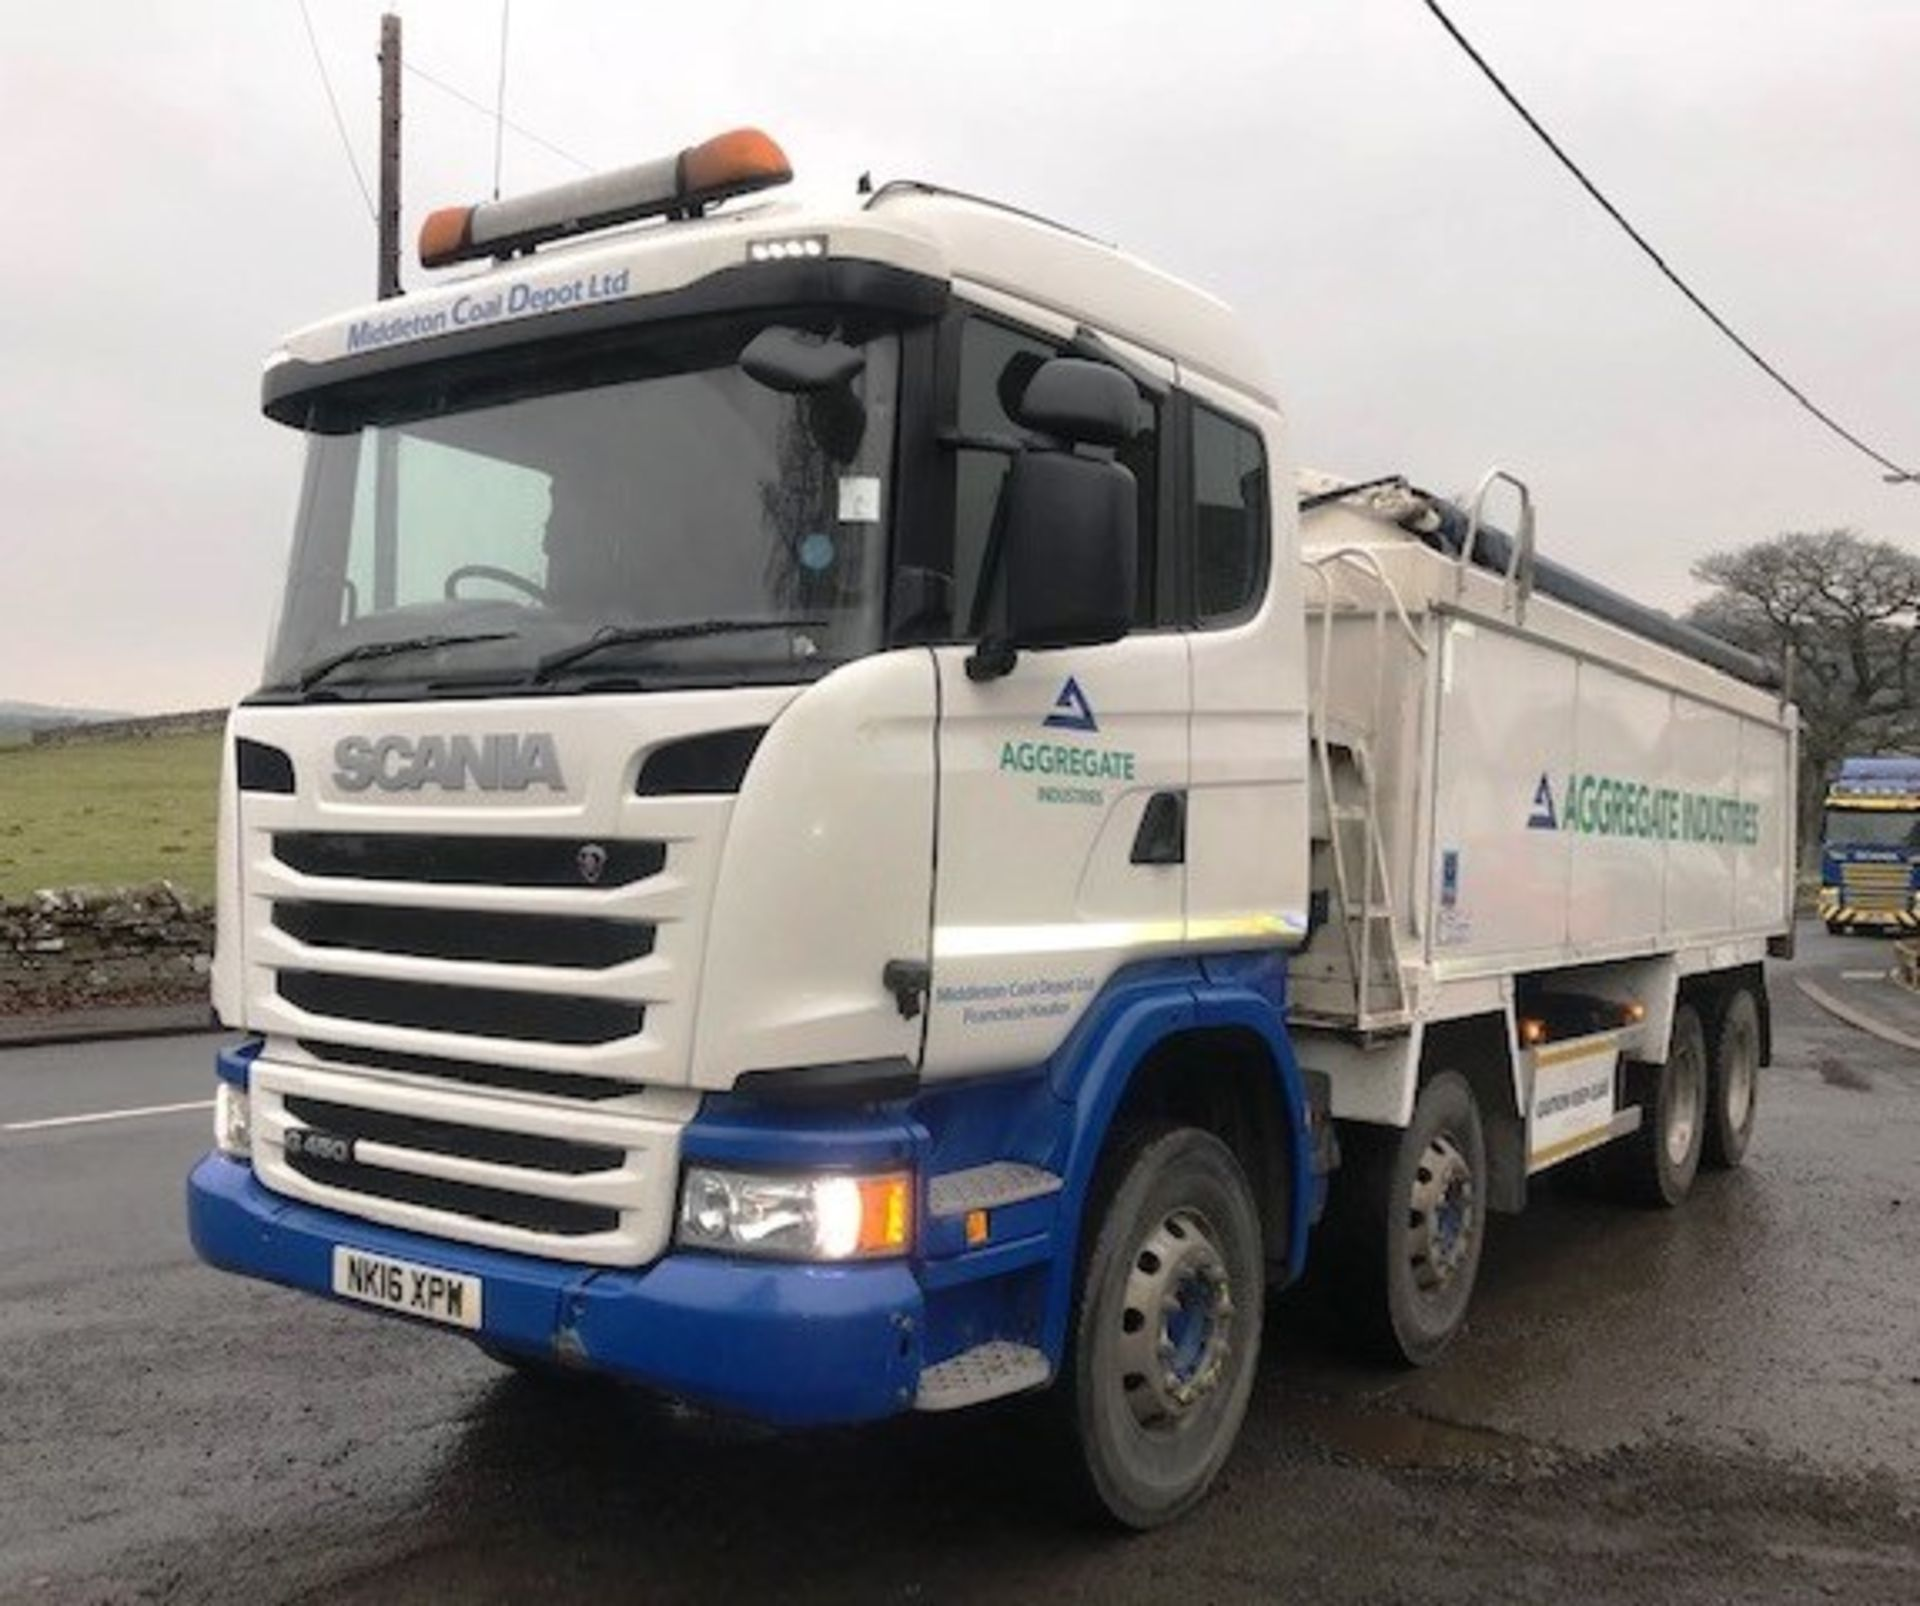 Lot 5 - 2016 | Scania G450 G-SRS Sleeper Cab 8x4 w/ Aliweld 4ft 9 Insulated Tipping Body | 330,000km